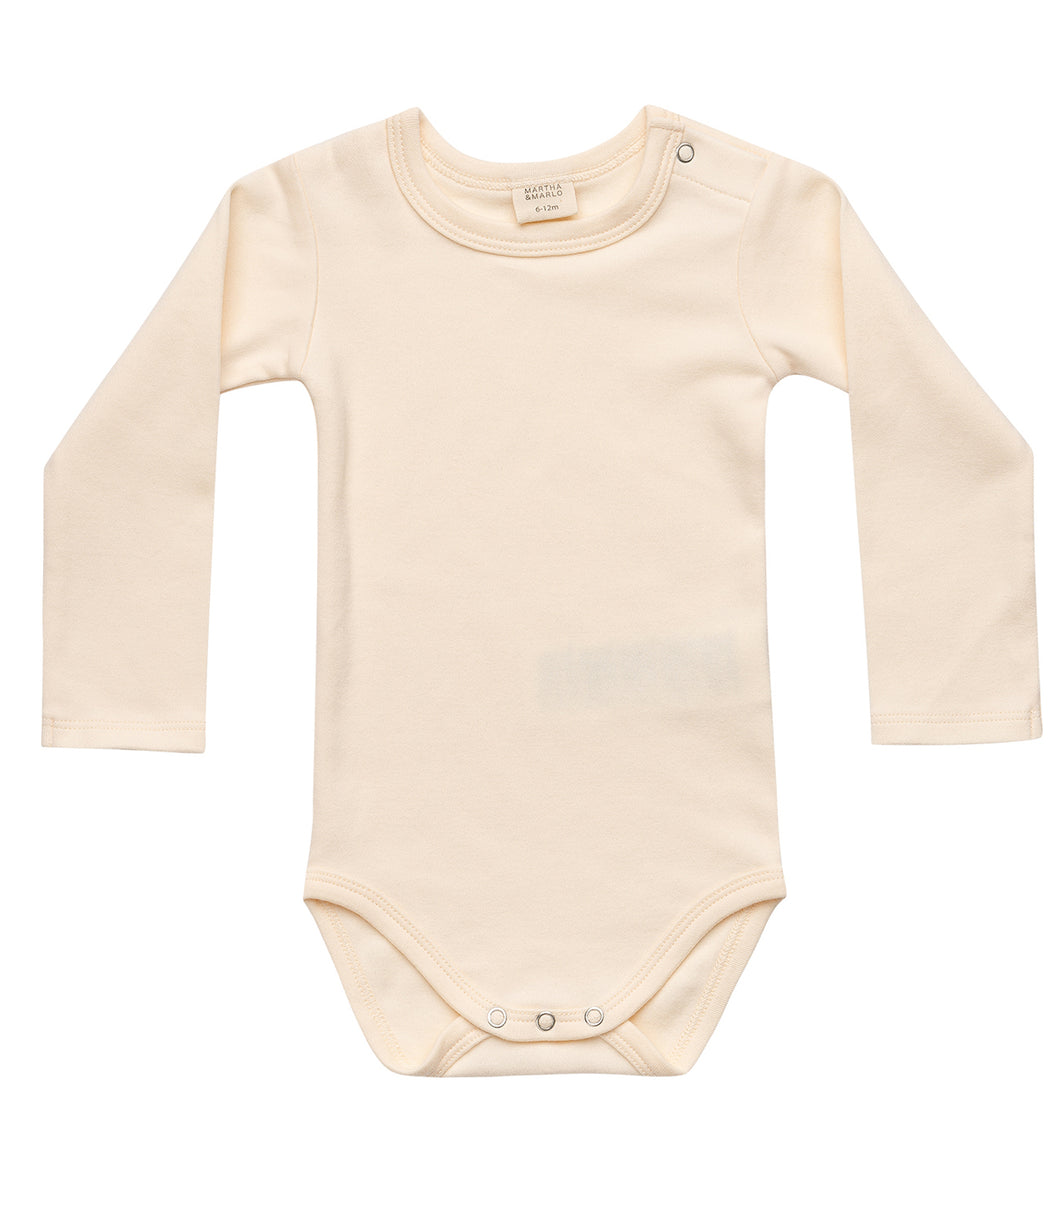 Martha & Marlo Baby Long Sleeve Bodysuit Cream